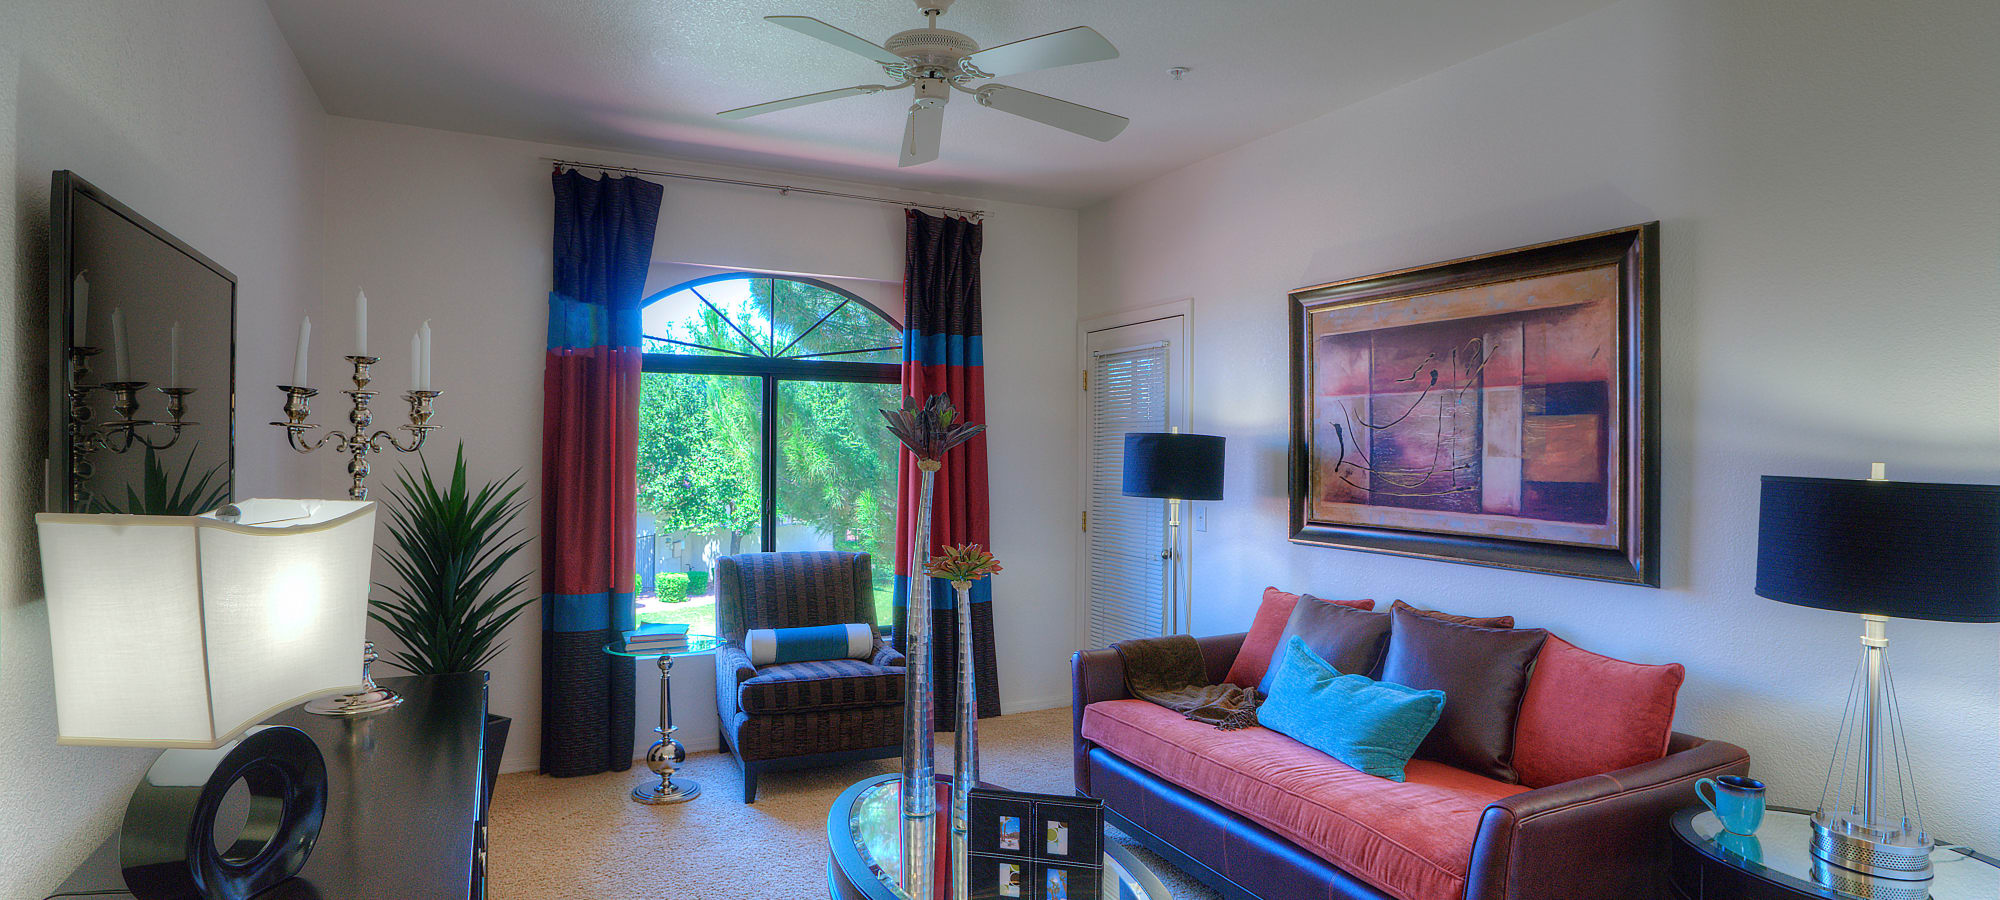 Living room with patio access at San Cervantes in Chandler, Arizona